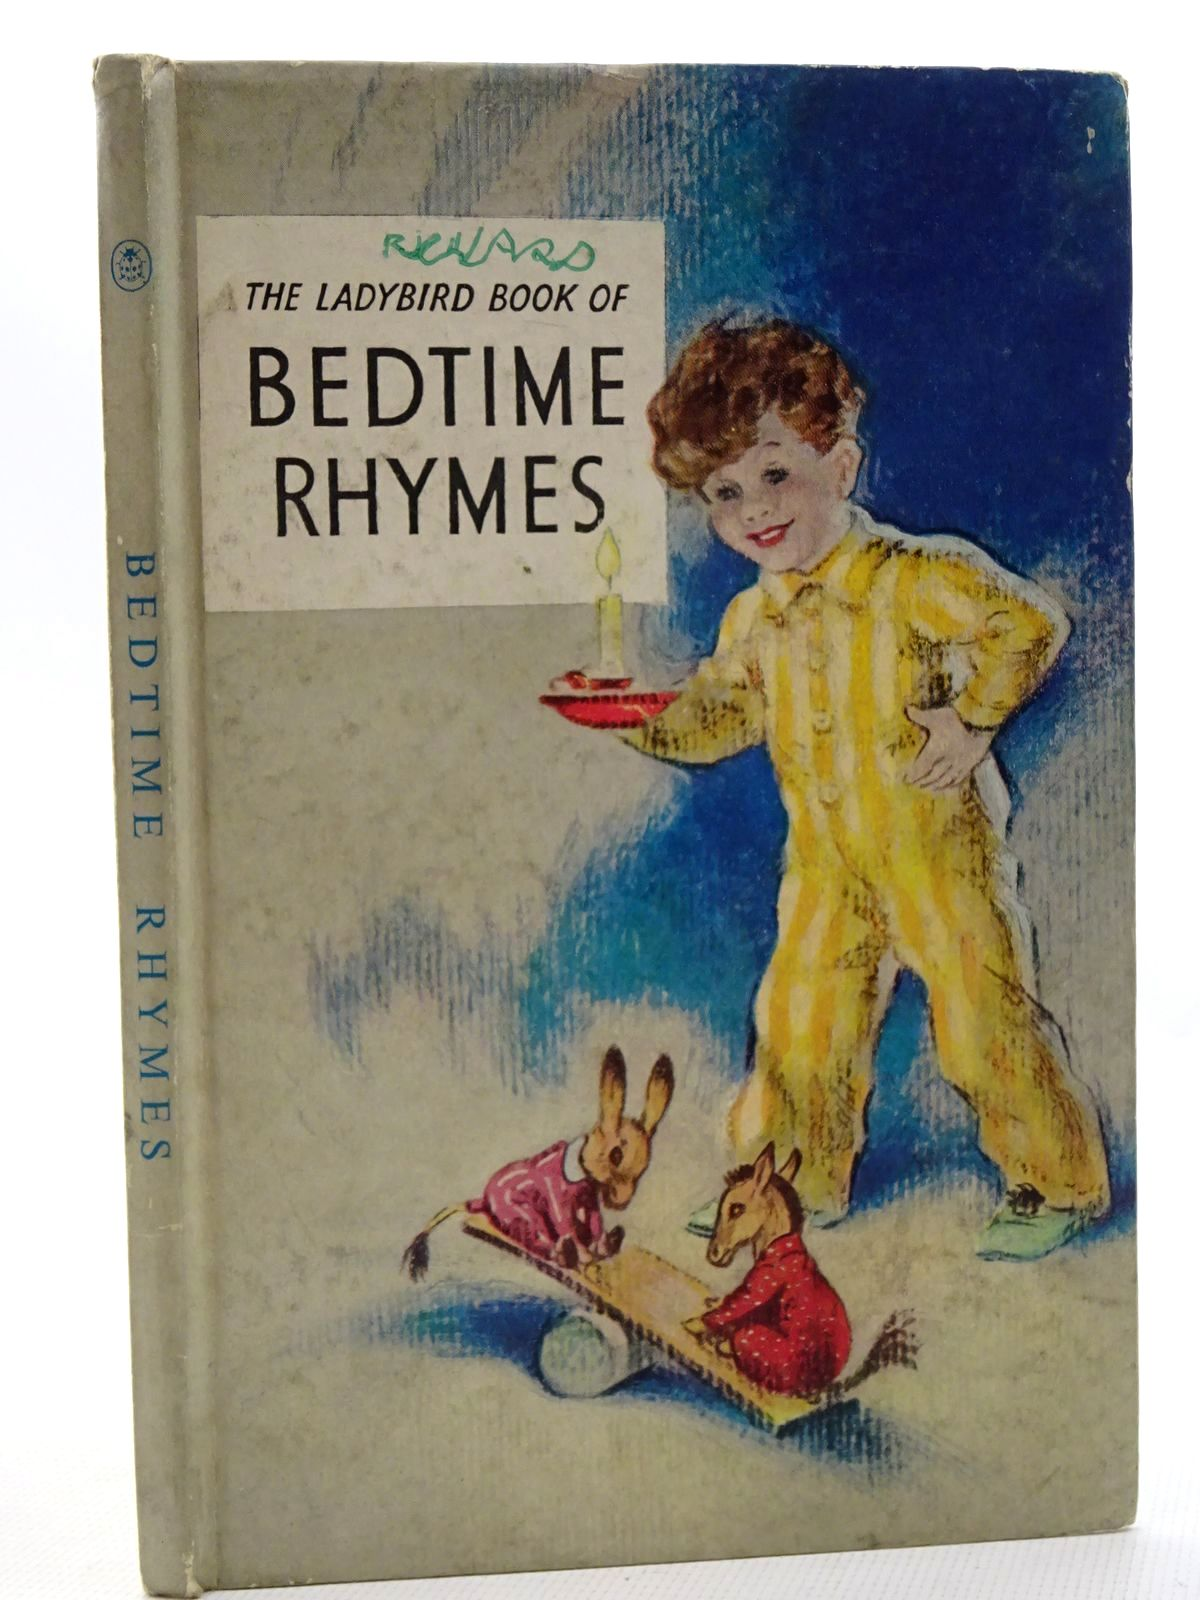 Photo of THE LADYBIRD BOOK OF BEDTIME RHYMES written by Lapage, Geoffrey illustrated by Brook, George published by Wills & Hepworth Ltd. (STOCK CODE: 2125039)  for sale by Stella & Rose's Books